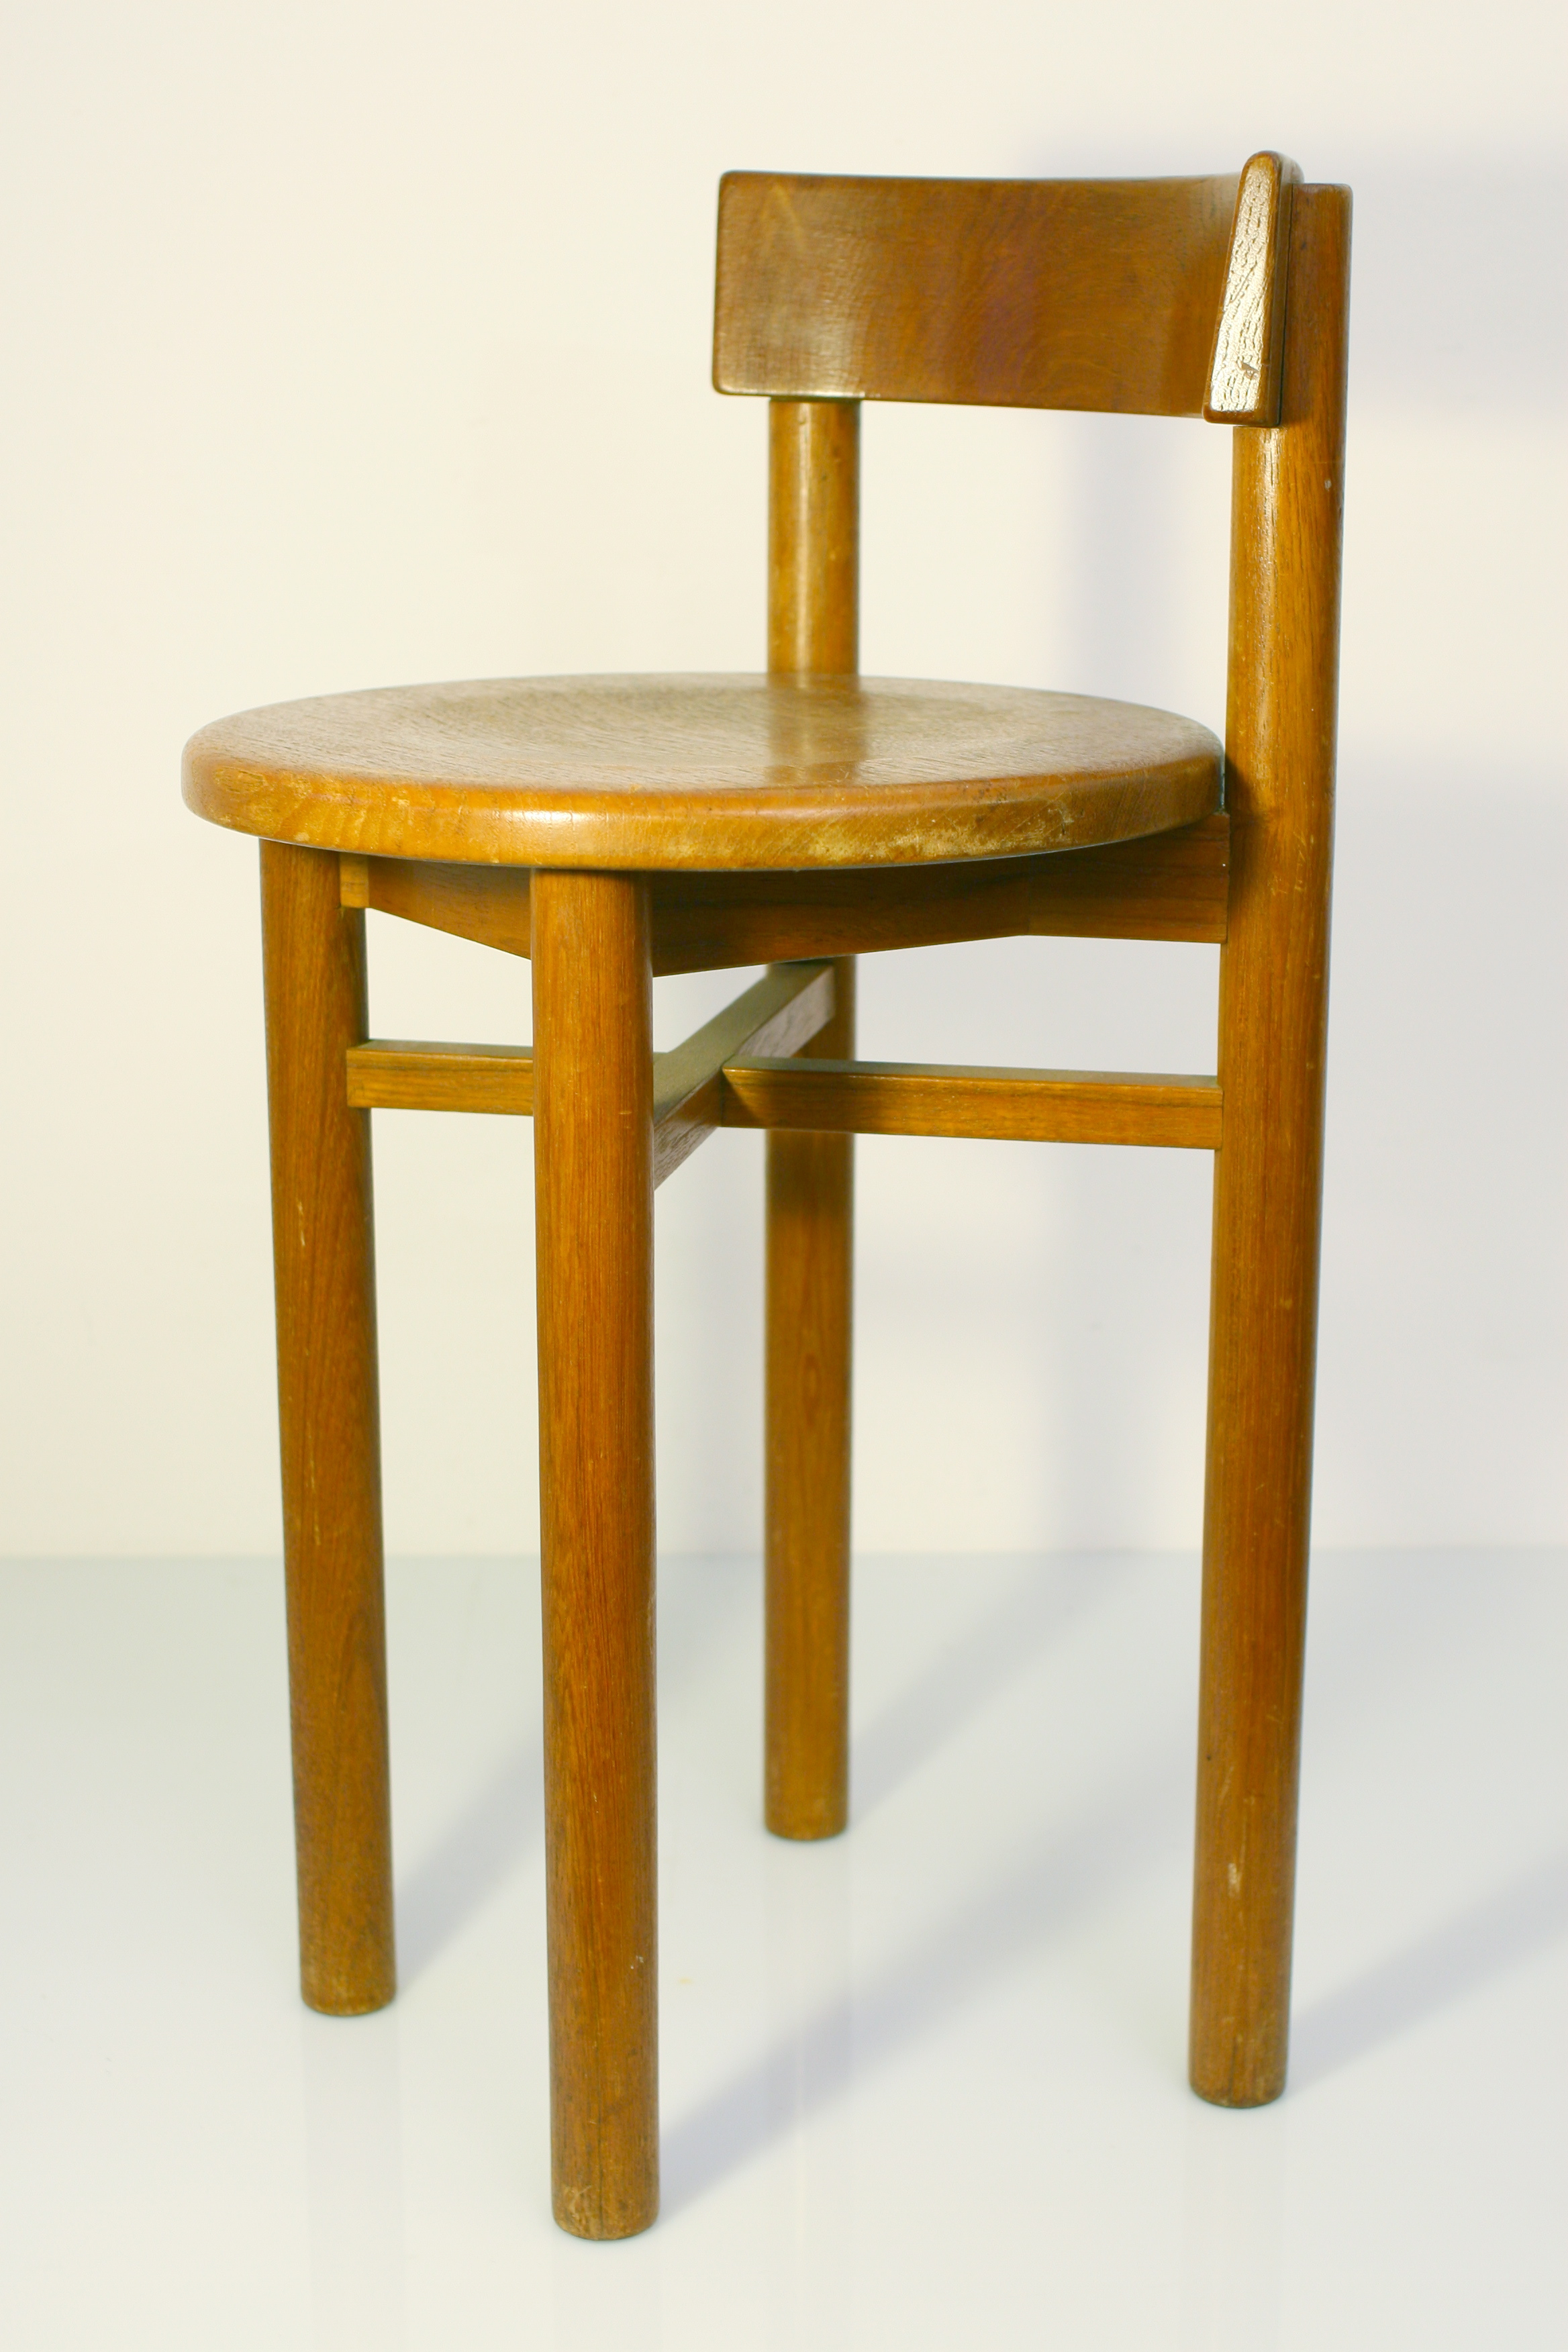 Charlotte Perriand Style Childrens Wooden Chair 50s